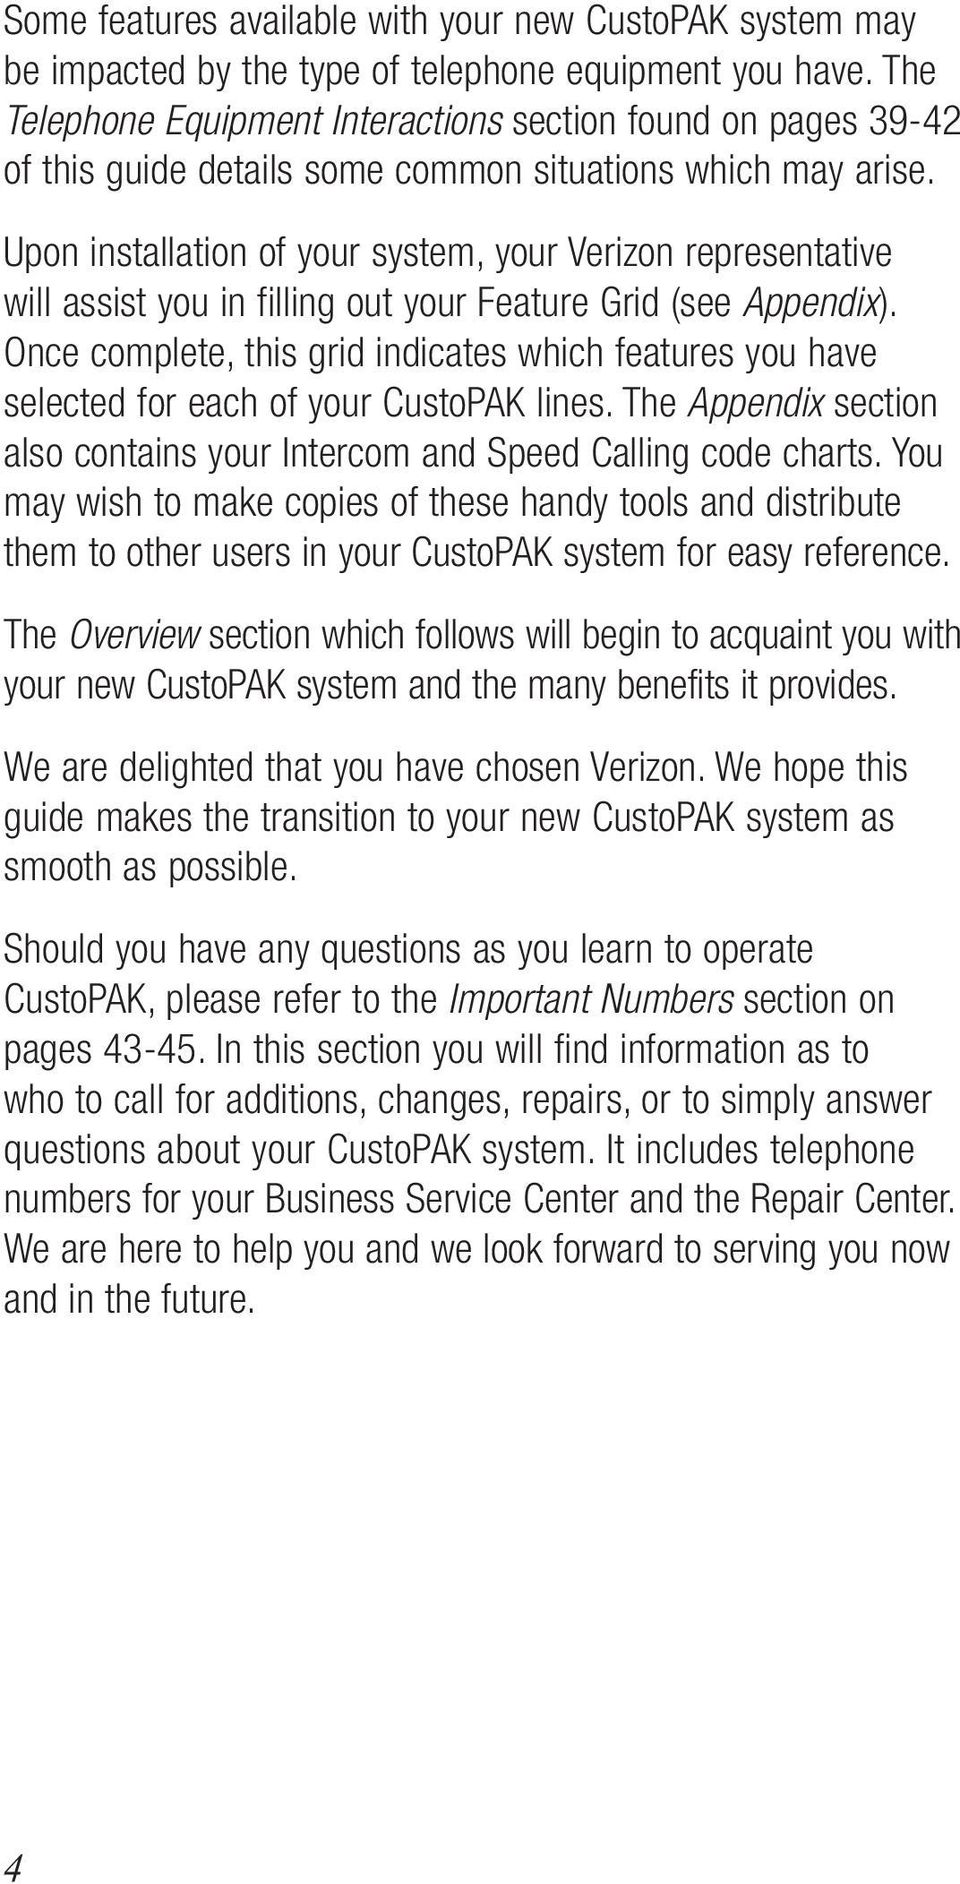 Upon installation of your system, your Verizon representative will assist you in filling out your Feature Grid (see Appendix).